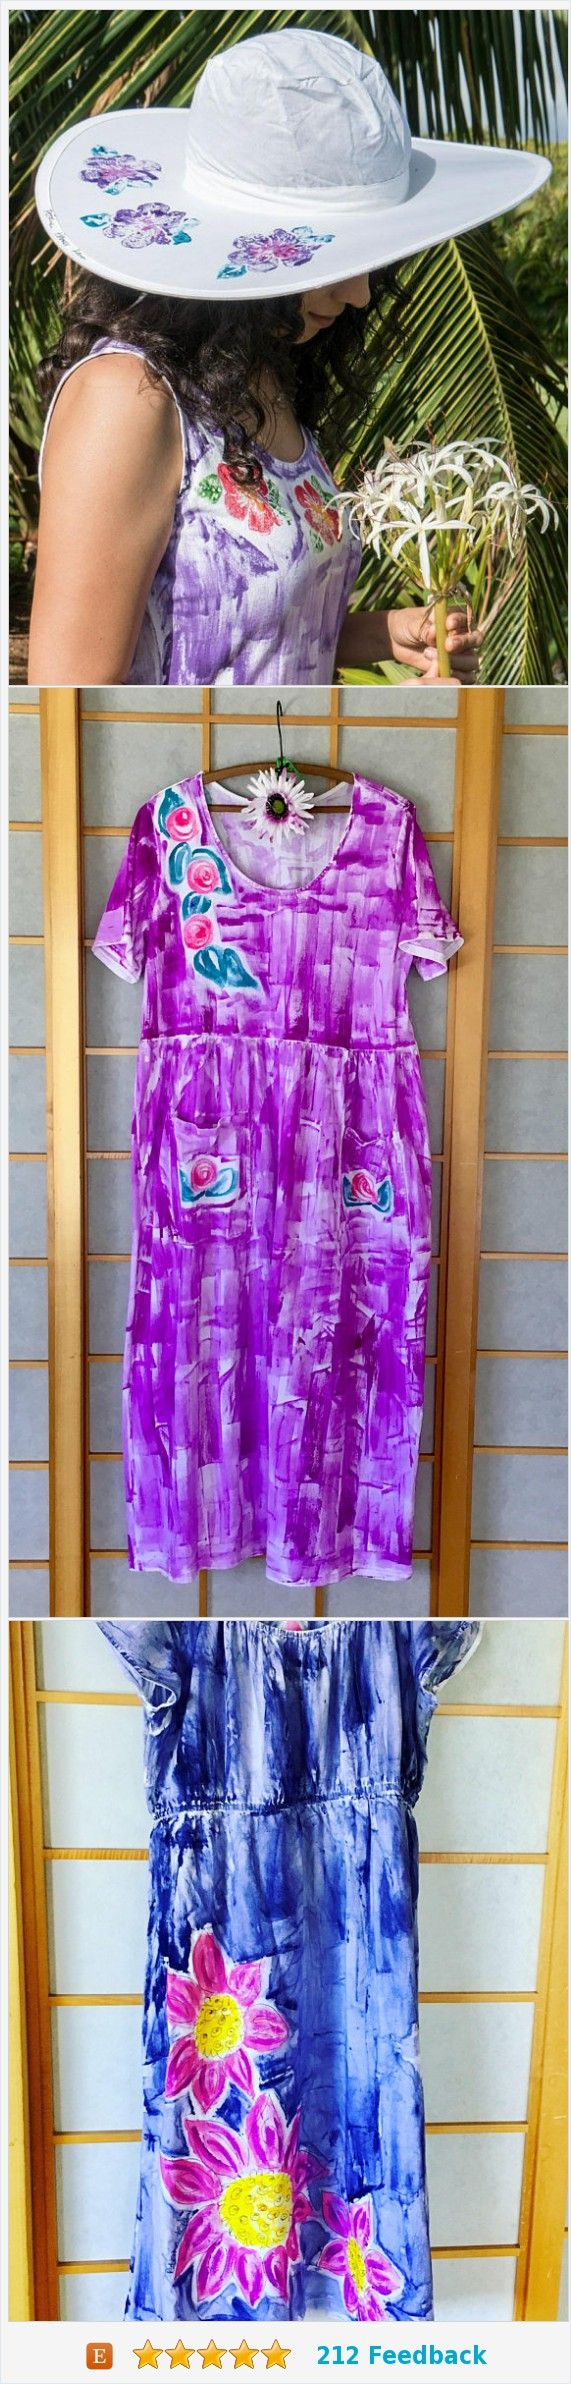 ON SALE - hawaii fashion - woman fashion #epiconetsy #etsyseller #etsyhandmade @HandmadeHour @EtsyRT @Relay_RTs https://www.etsy.com/PetrinaBlakely/listing/549834831/on-sale-hawaii-fashion-woman-fashion?ref=shop_home_feat_2